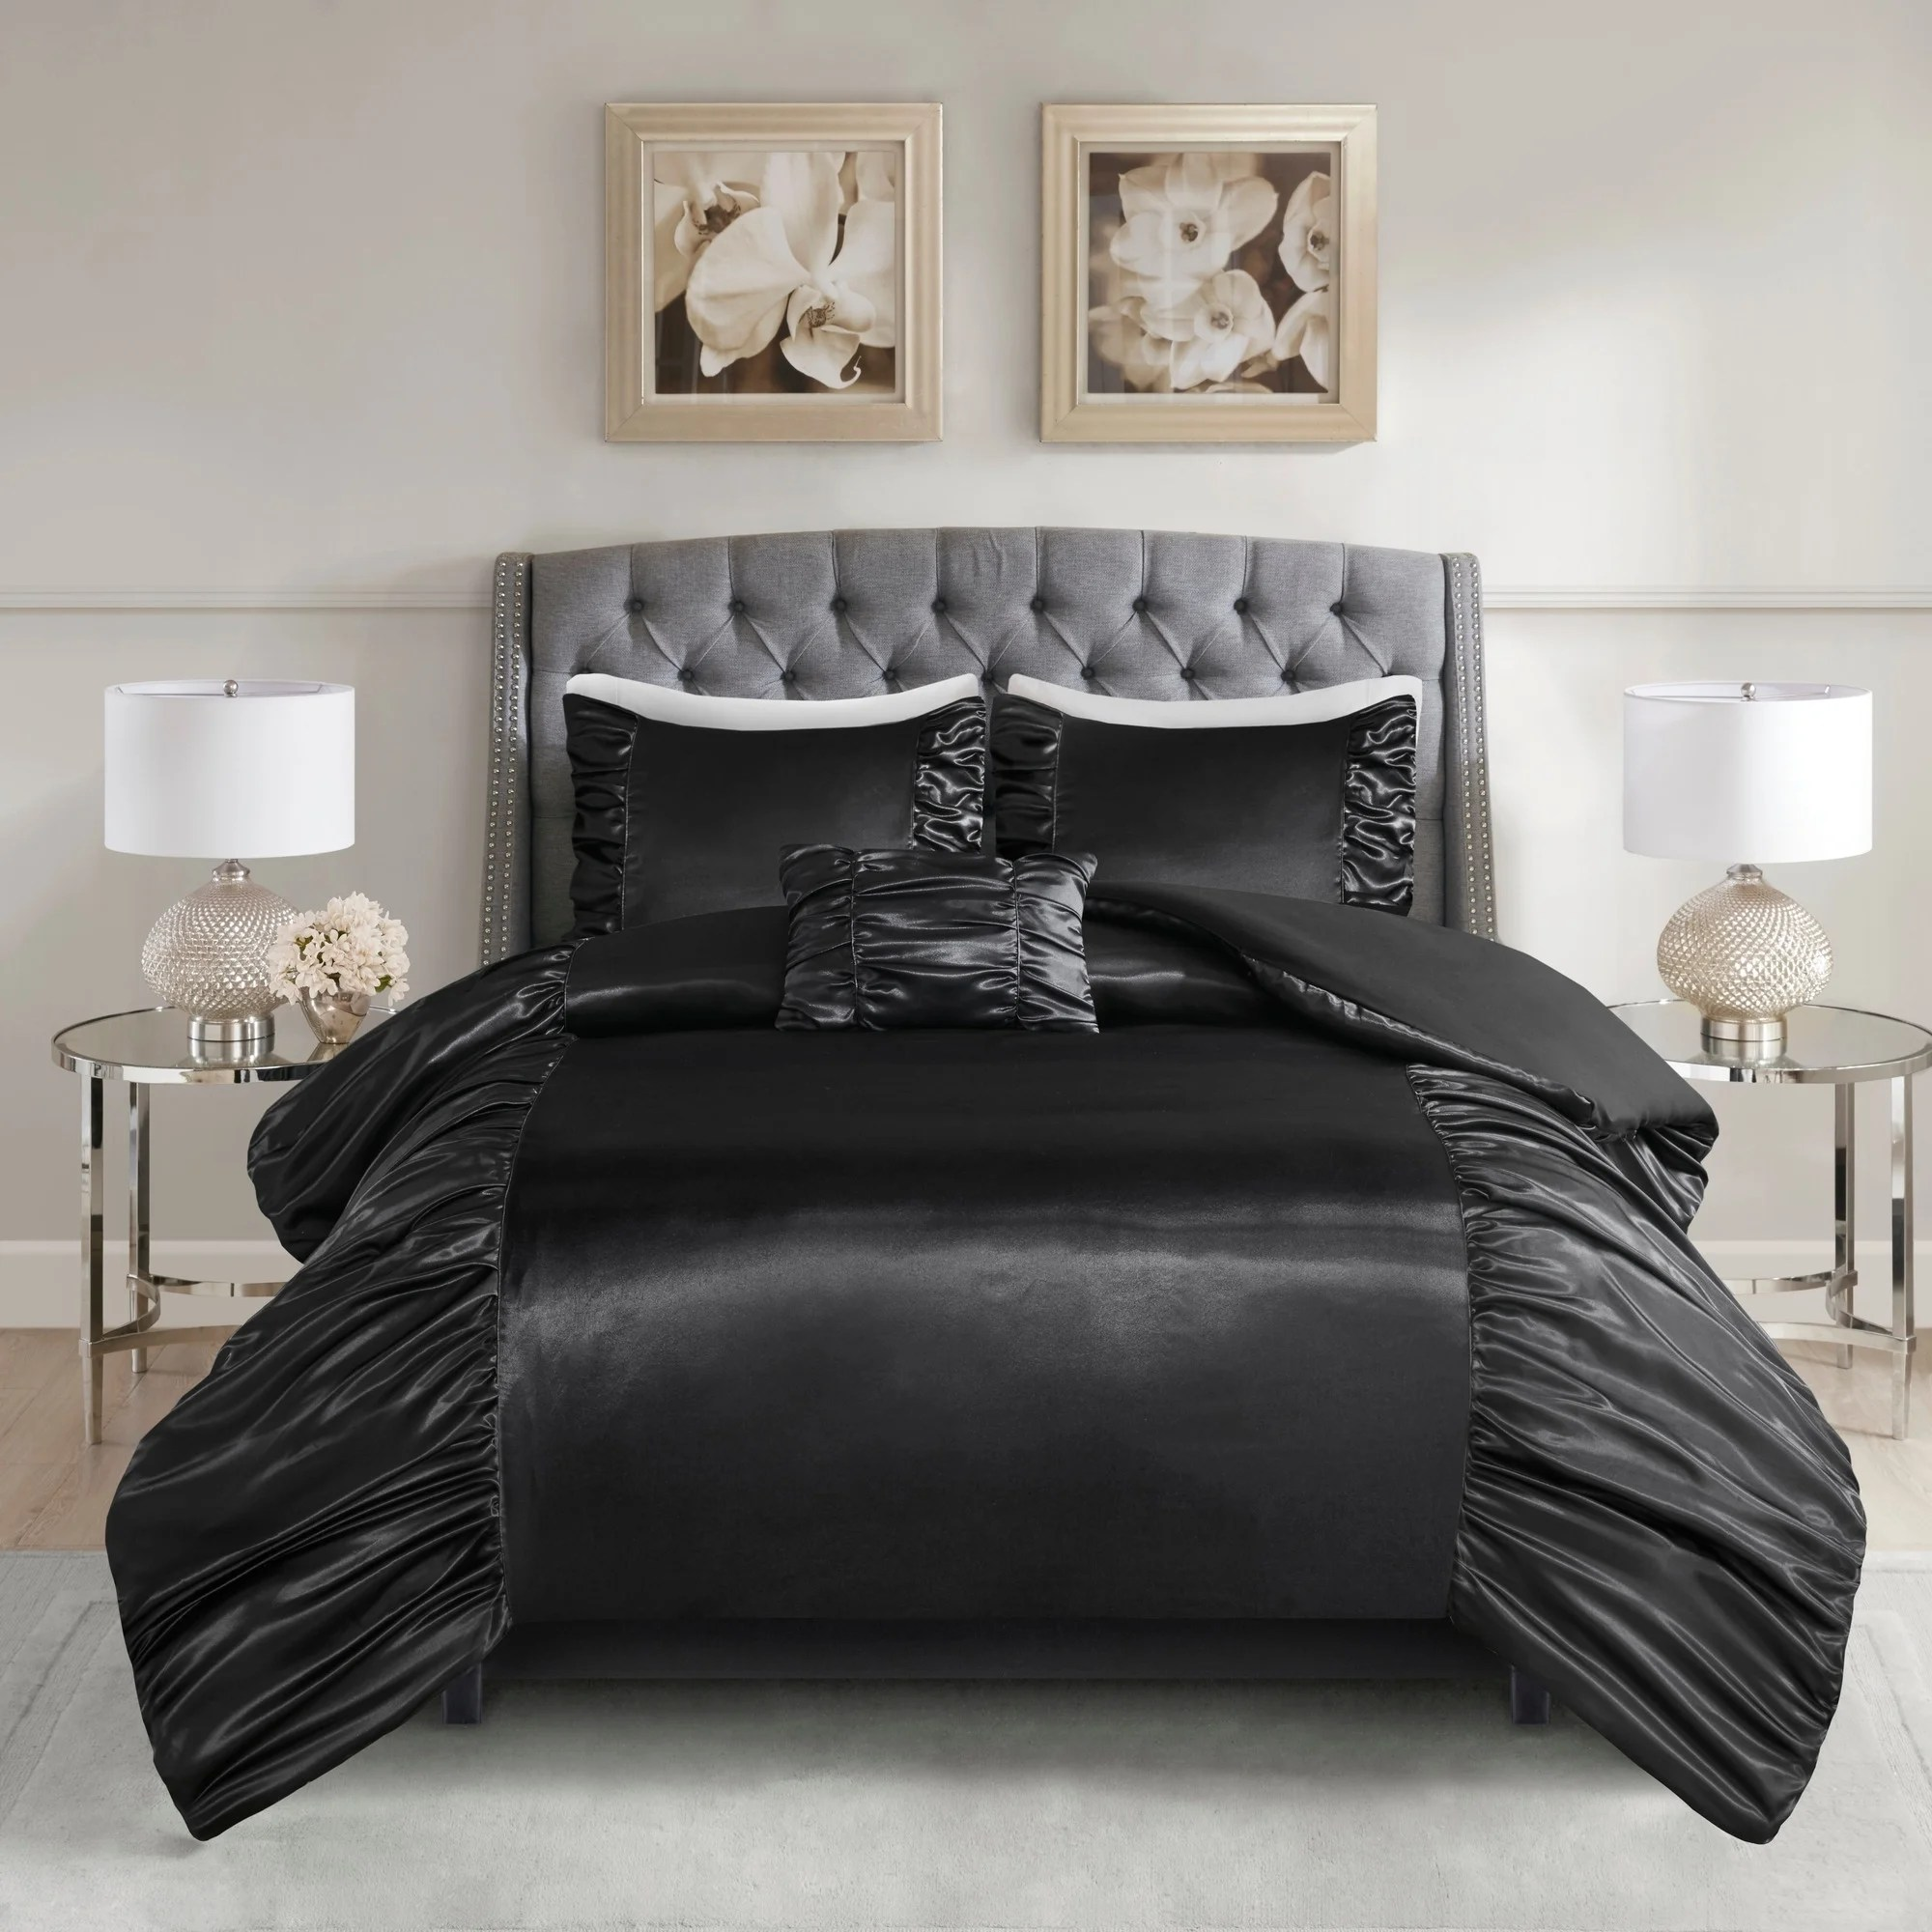 Satin Duvet Cover Madison Park Shelby Black 4 Piece Silky Satin Duvet Cover Set